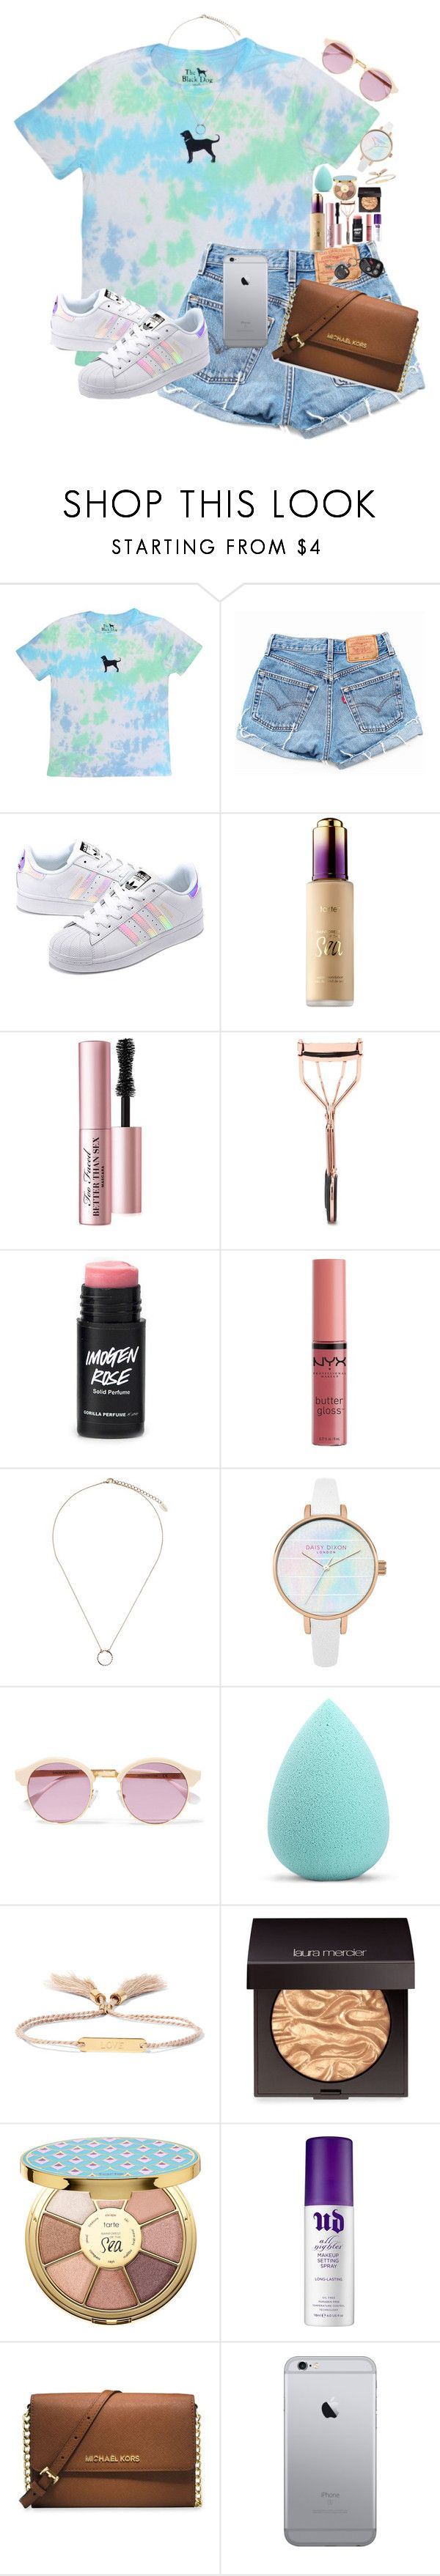 """""""«feels»"""" by lizxlol on Polyvore featuring adidas Originals, Sephora Collection, Too Faced Cosmetics, Forever 21, NYX, Orelia, Sheriff&Cherry, My Makeup Brush Set, Chloé and Laura Mercier"""